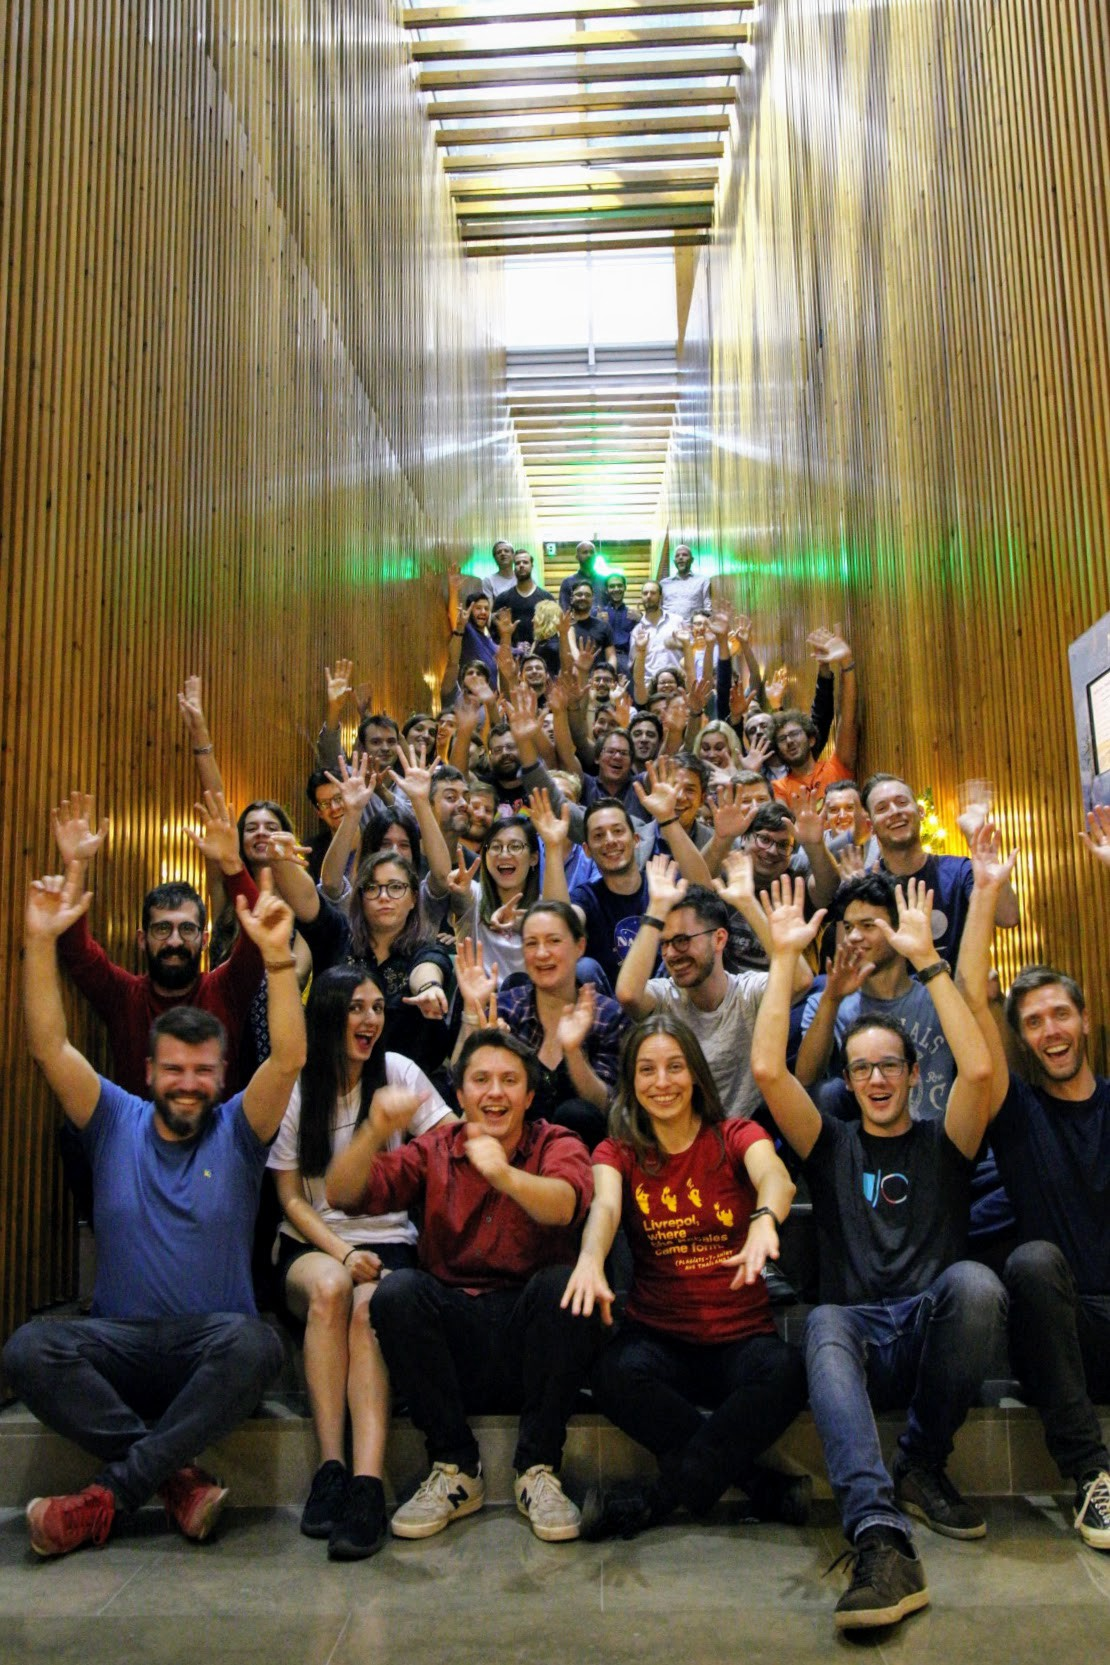 The Novoda team! — photo courtesy of Daniele Bonaldo